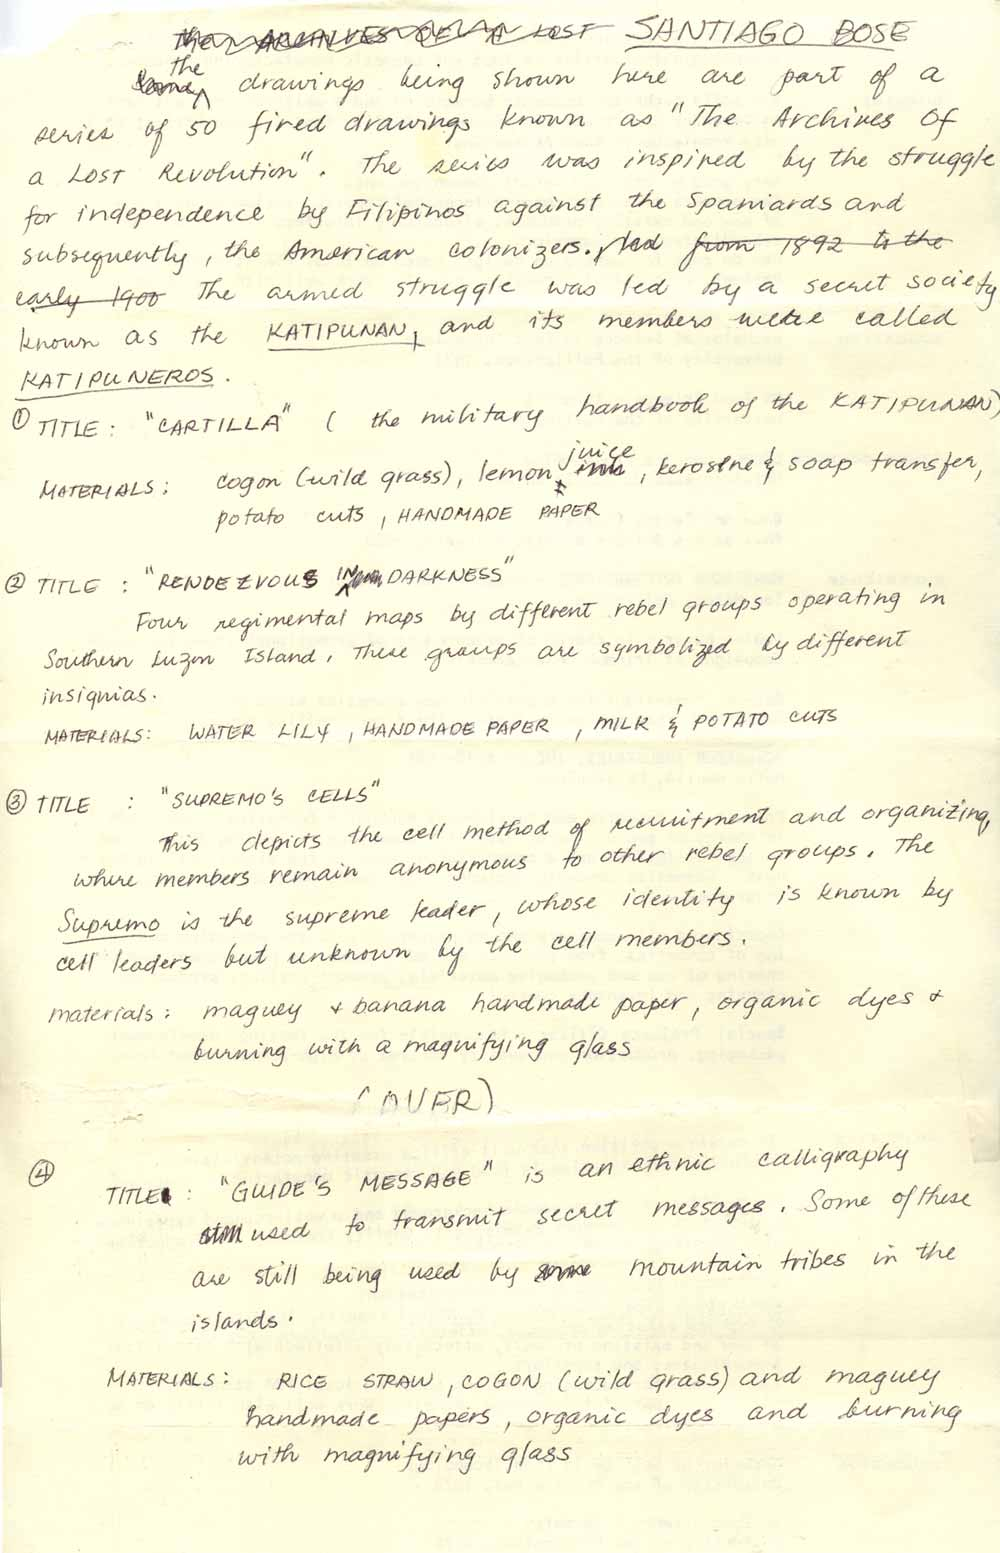 Notes on Archives of a Lost Revolution